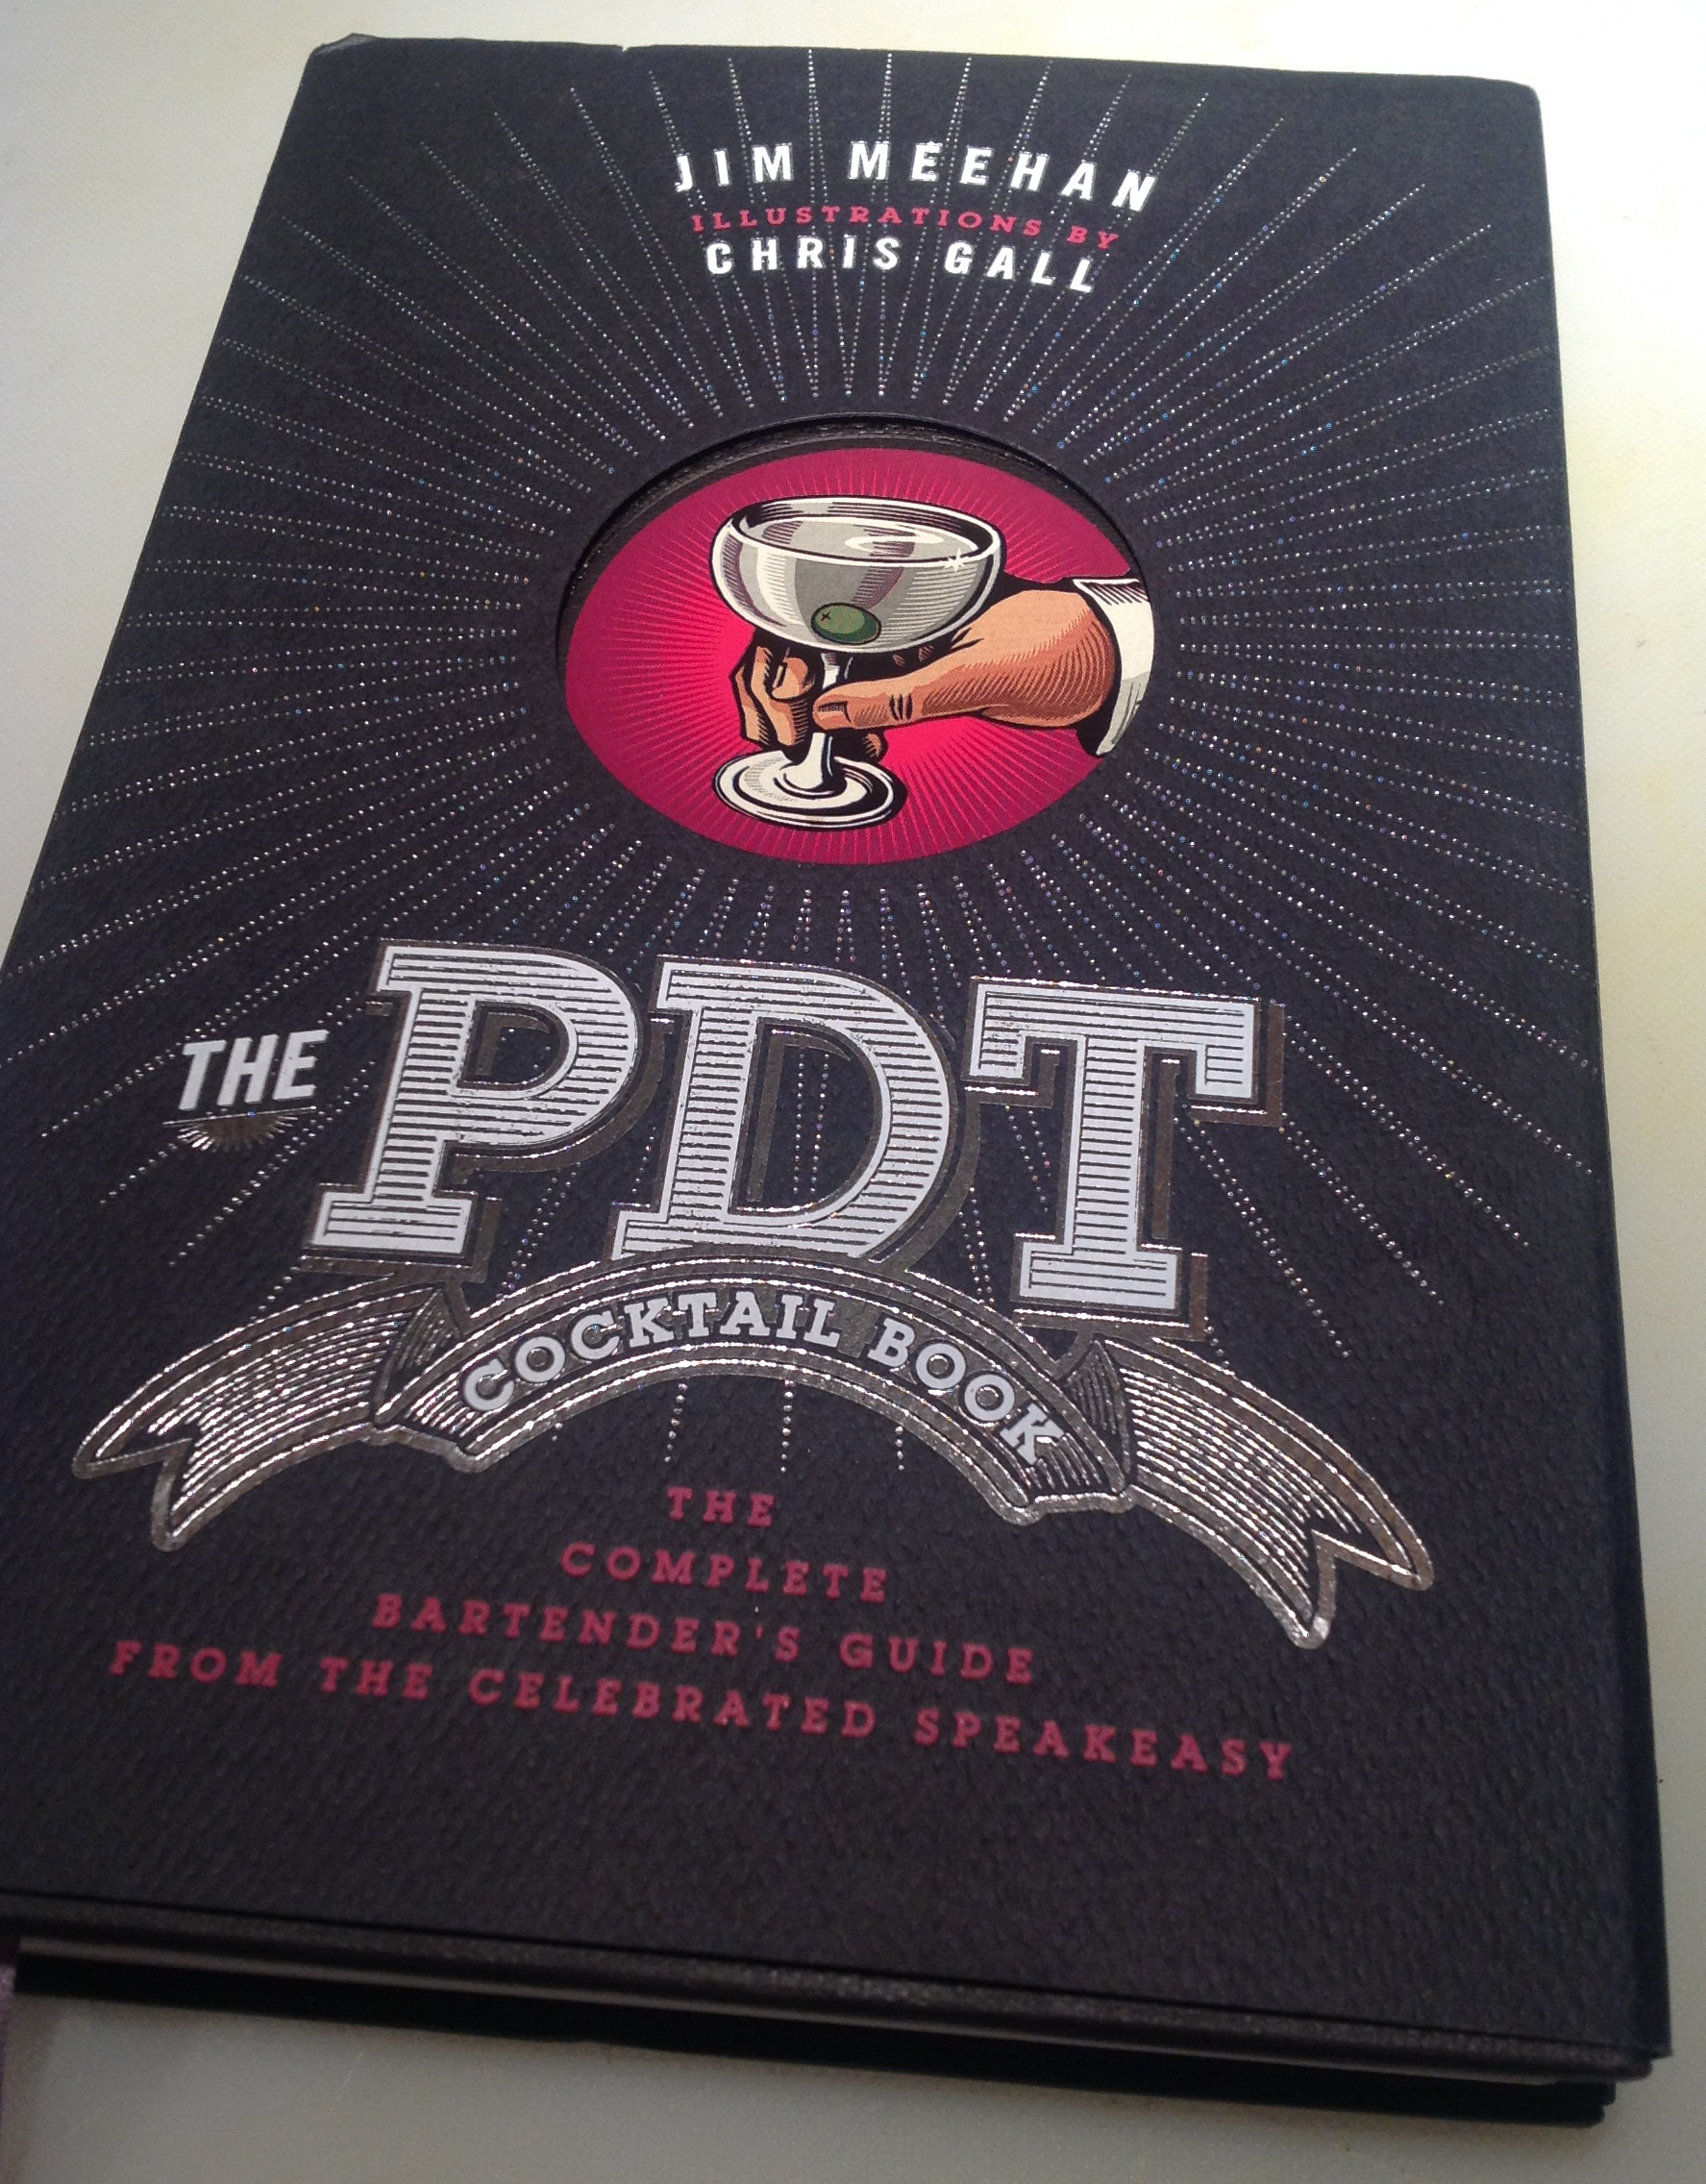 The PDT Cocktail Book by Jim Meehan and Chris Gall